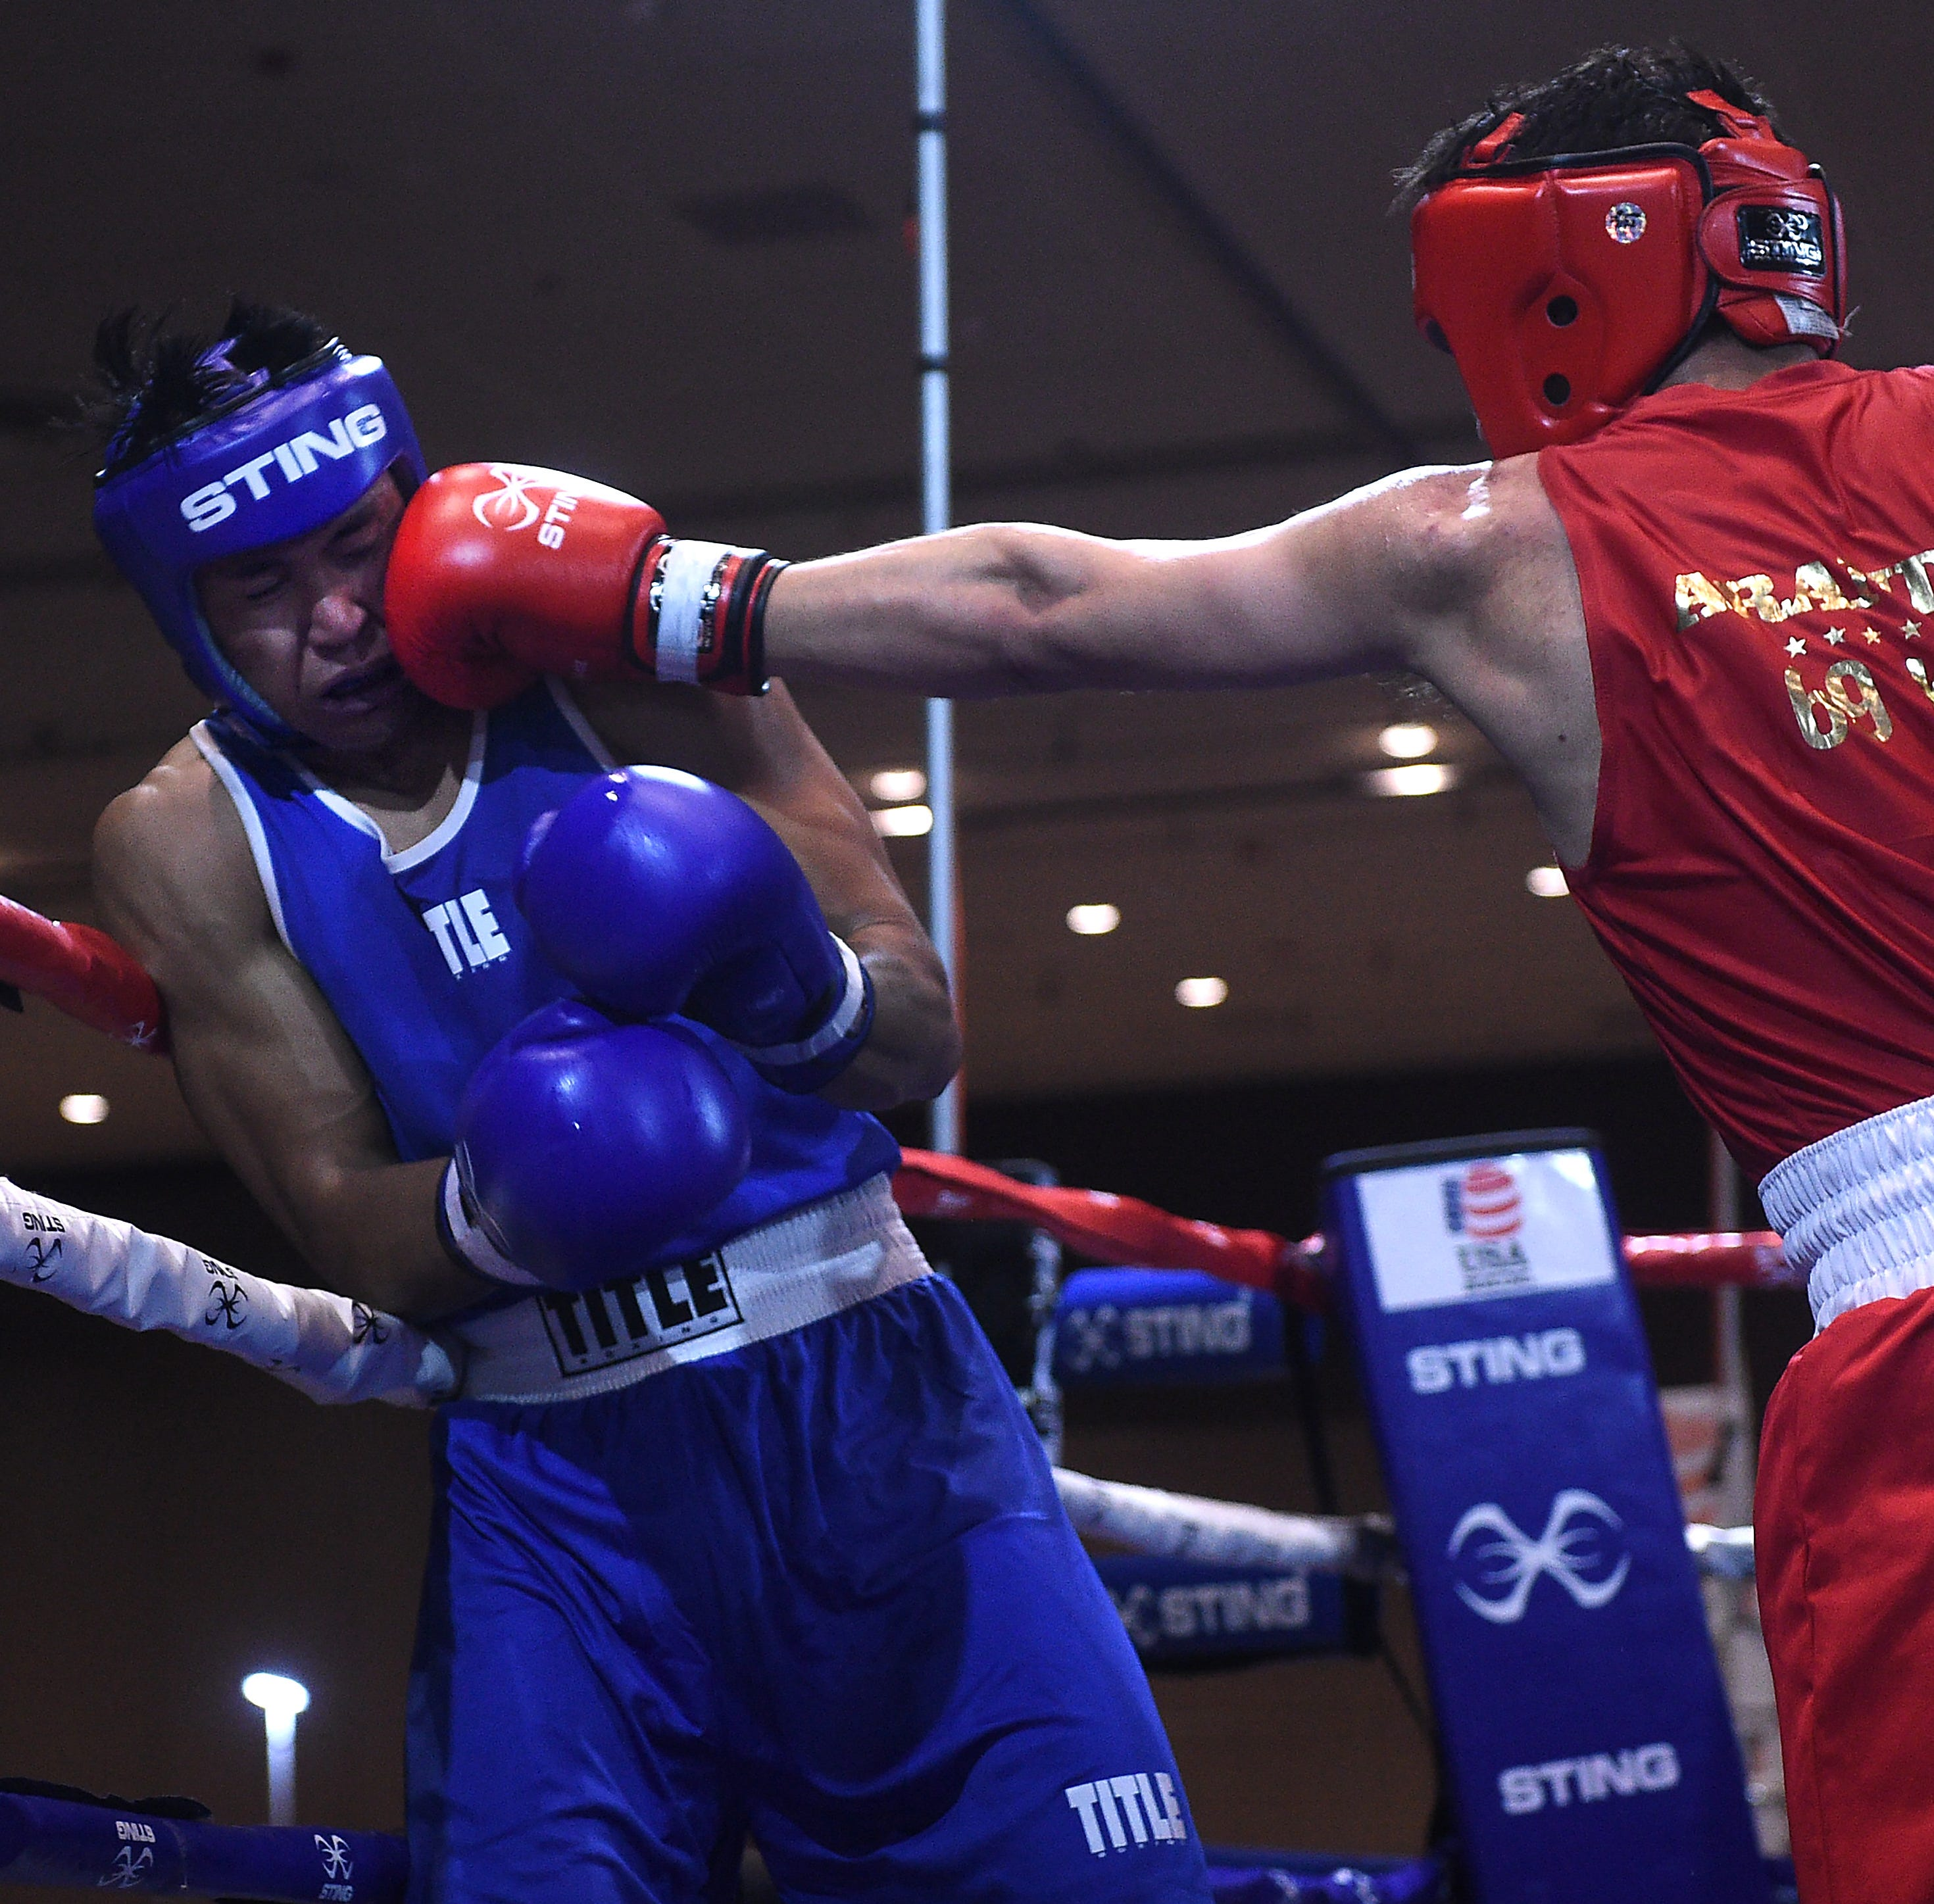 Mariano falls short in Olympic Trials boxing qualifier